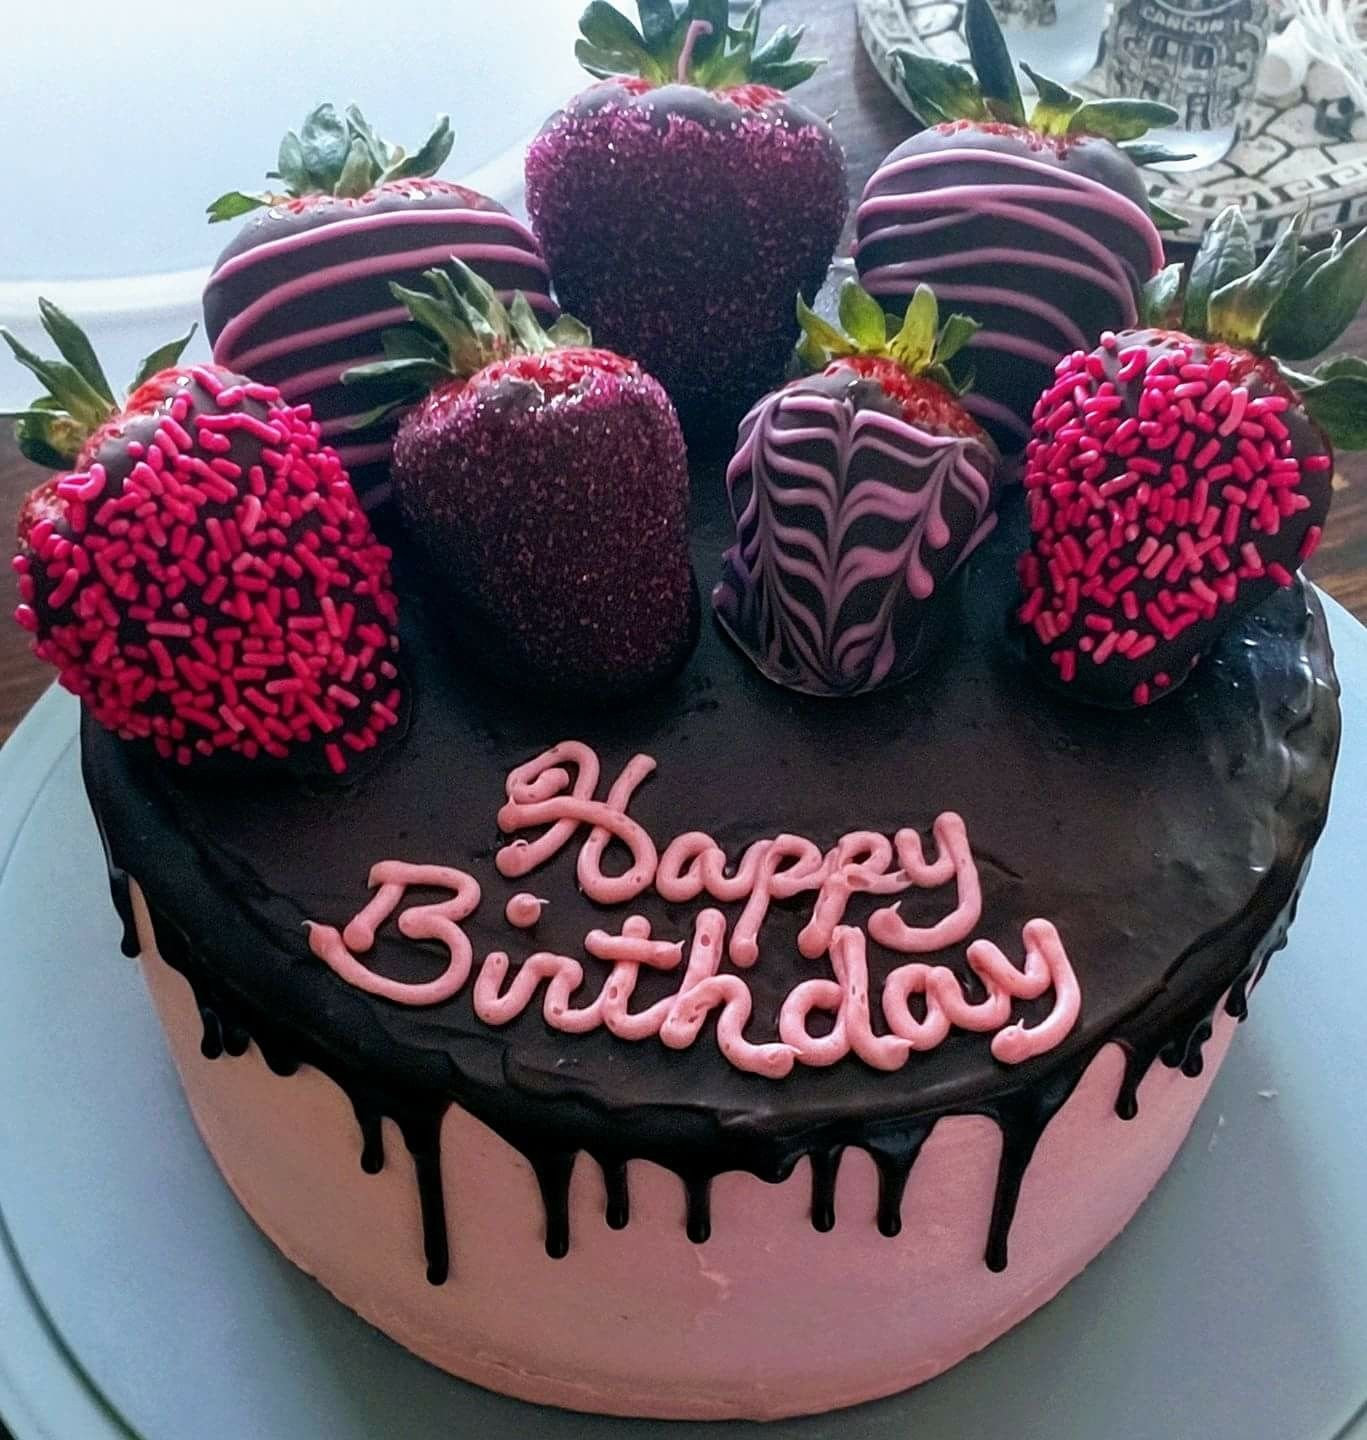 Awe Inspiring Birthday Cake Chocolate Covered Strawberry Drip Cake With Funny Birthday Cards Online Inifofree Goldxyz